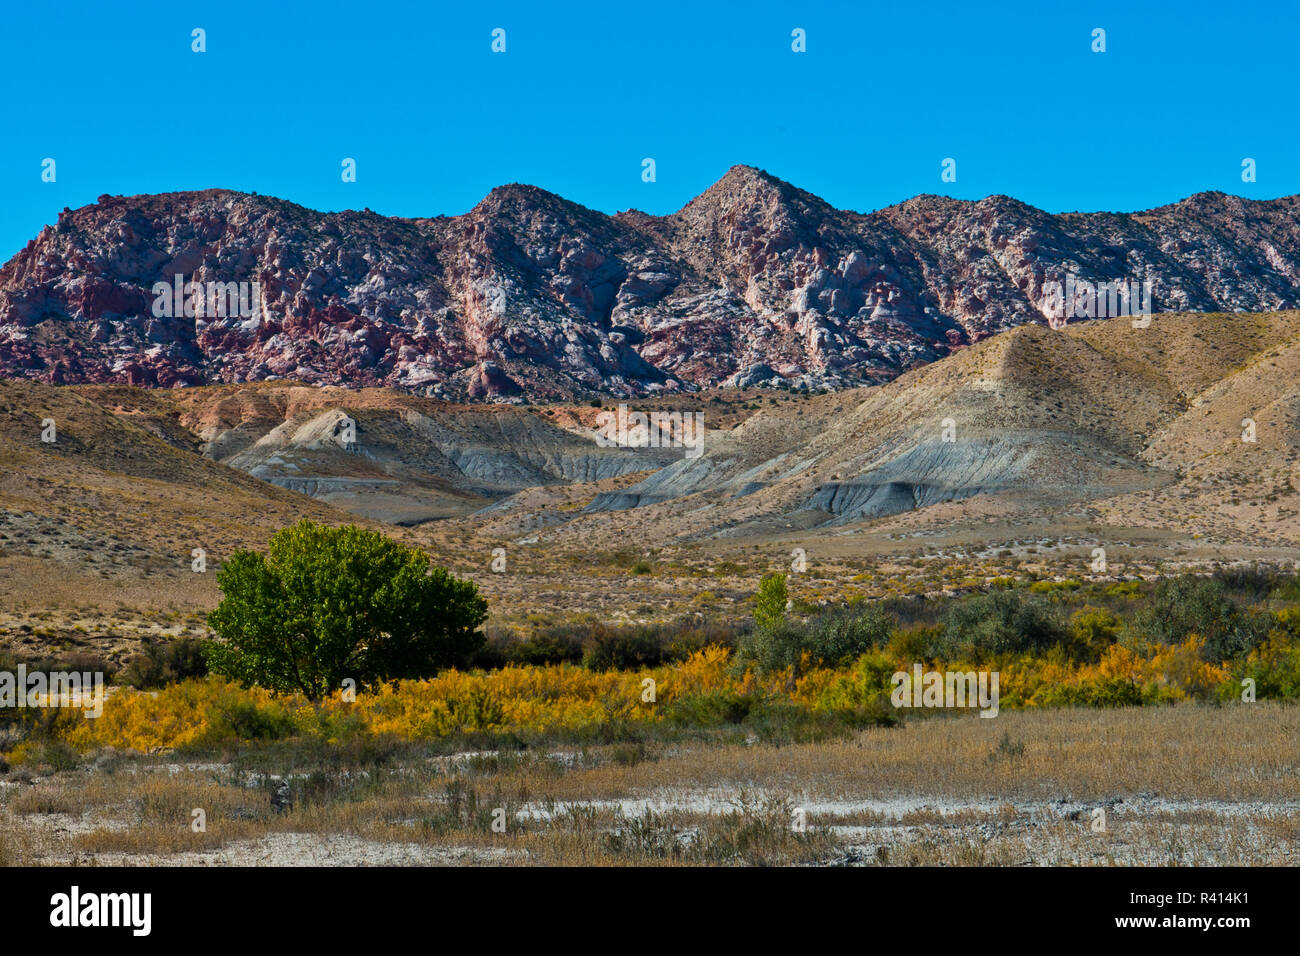 USA, Utah. Big Water, Spectacular views from Cottonwood Canyon Road - Stock Image